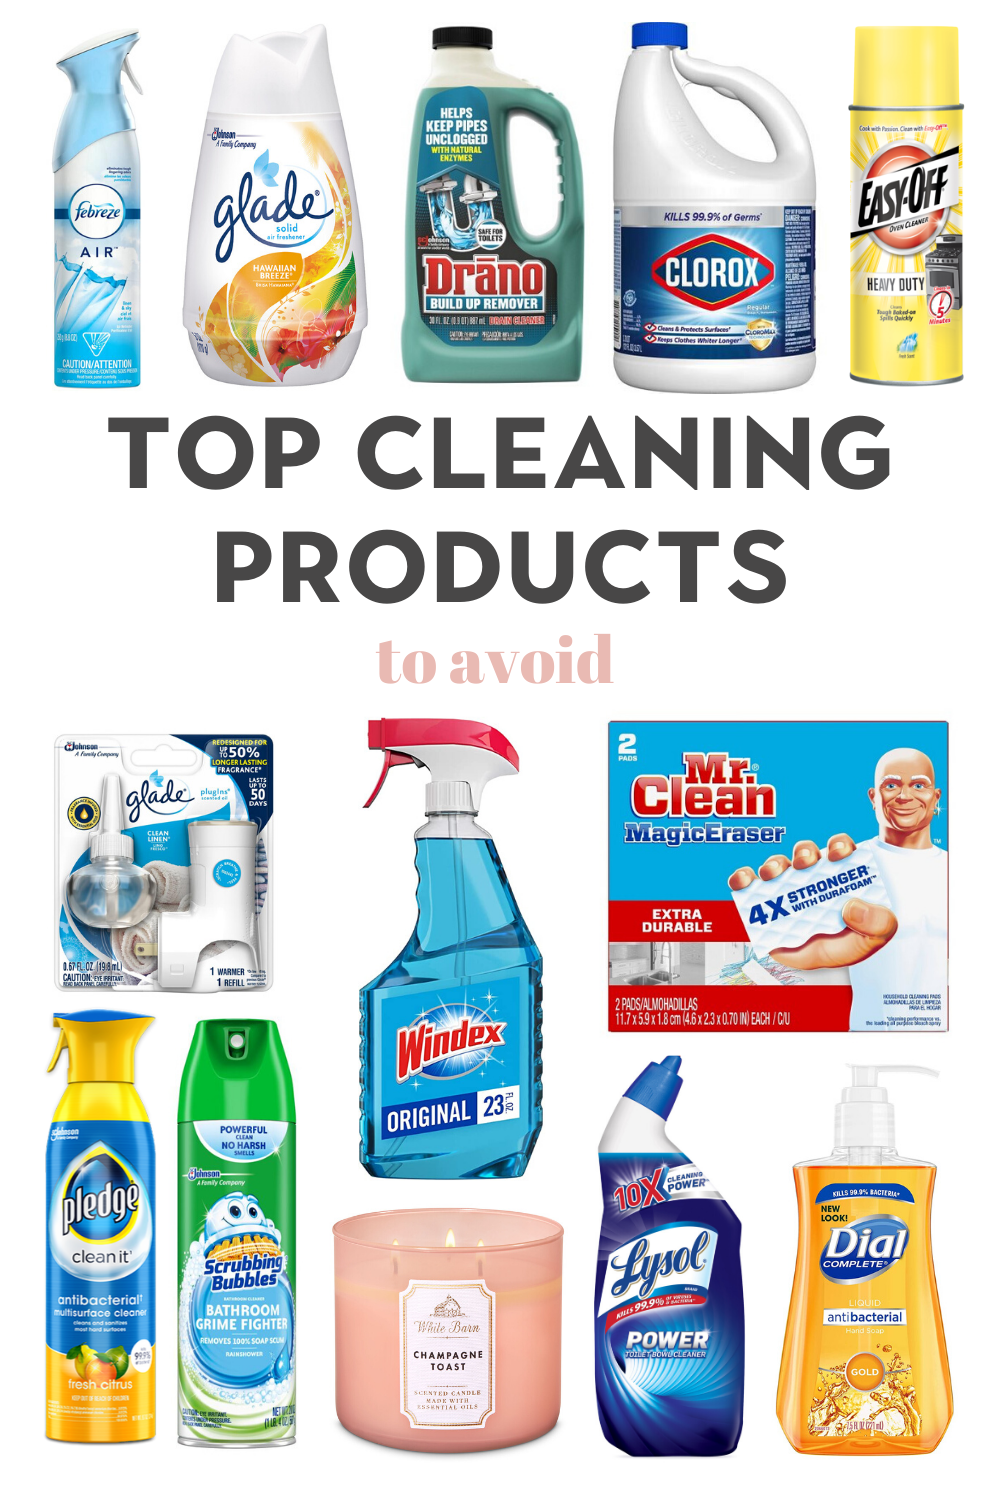 Top toxic cleaning products to avoid